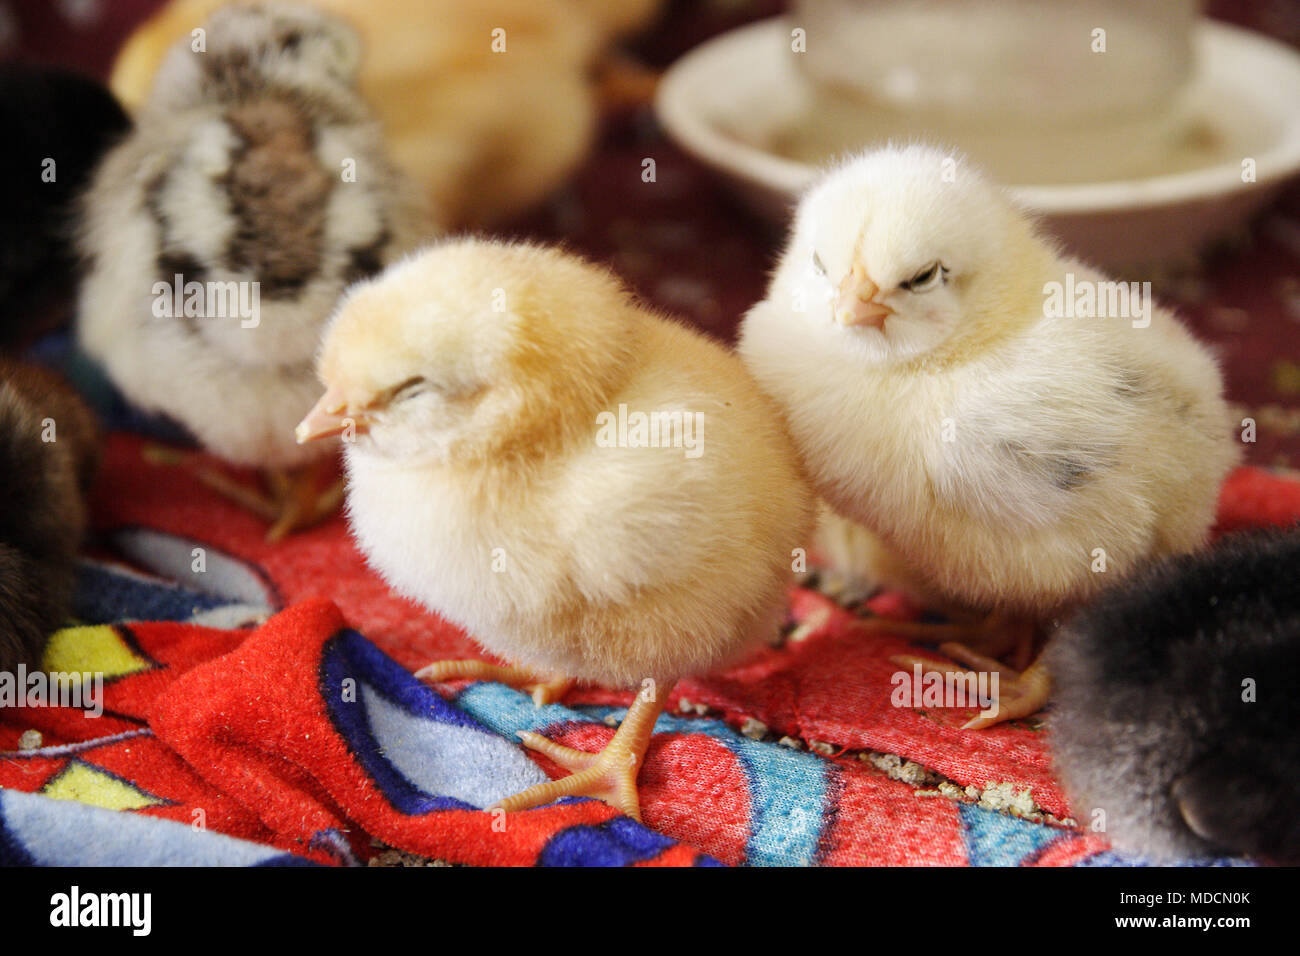 The chickens are asleep after a rich lunch. - Stock Image